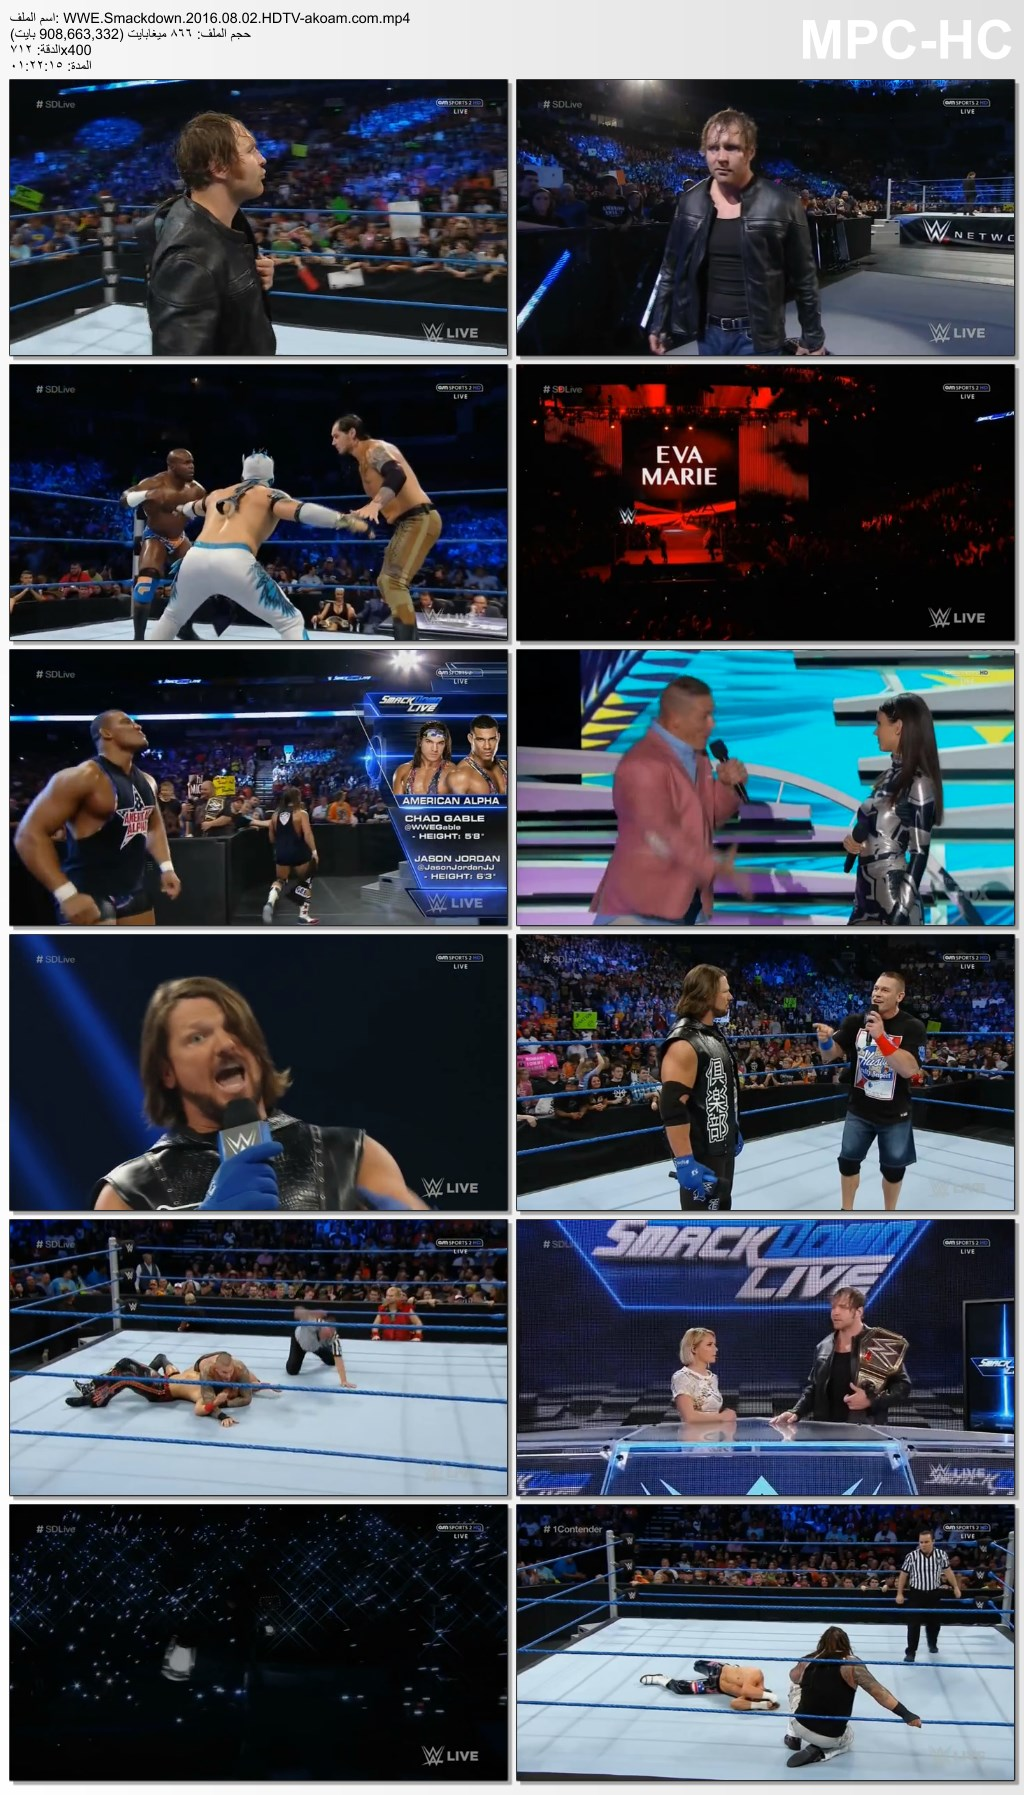 Smackdown,WWE Smackdown,WWE,مصارعة